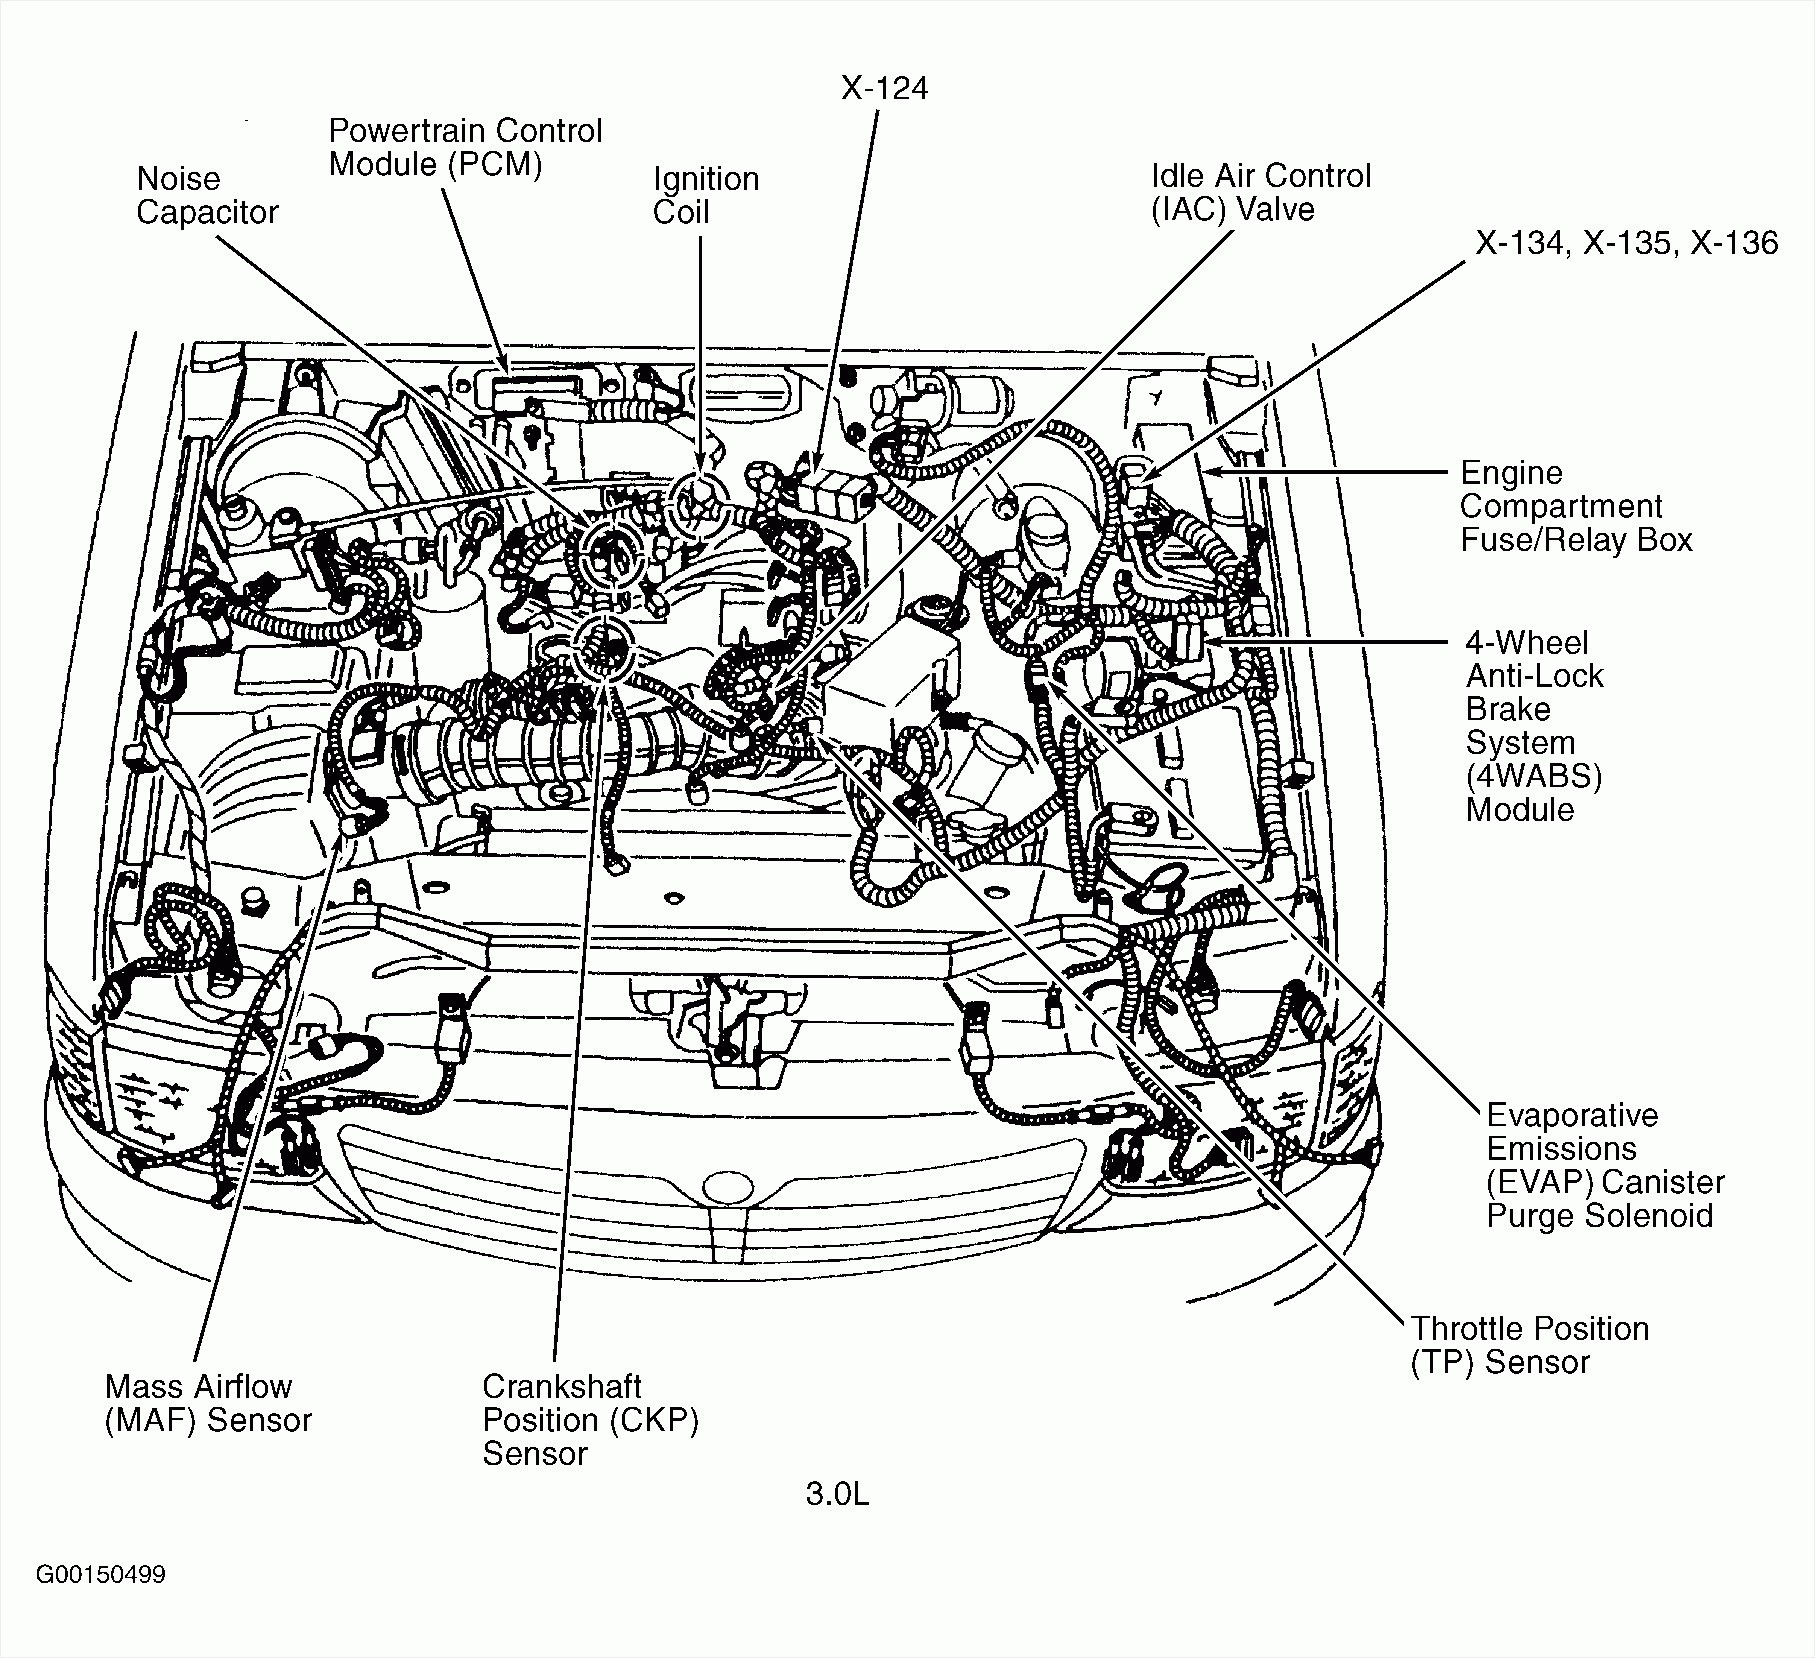 Mx Engine Bay Diagram Layout For Mazda Engine Wiring Diagrams E A Of Mx Engine Bay Diagram on 1998 Mazda 626 Alternator Wiring Diagram